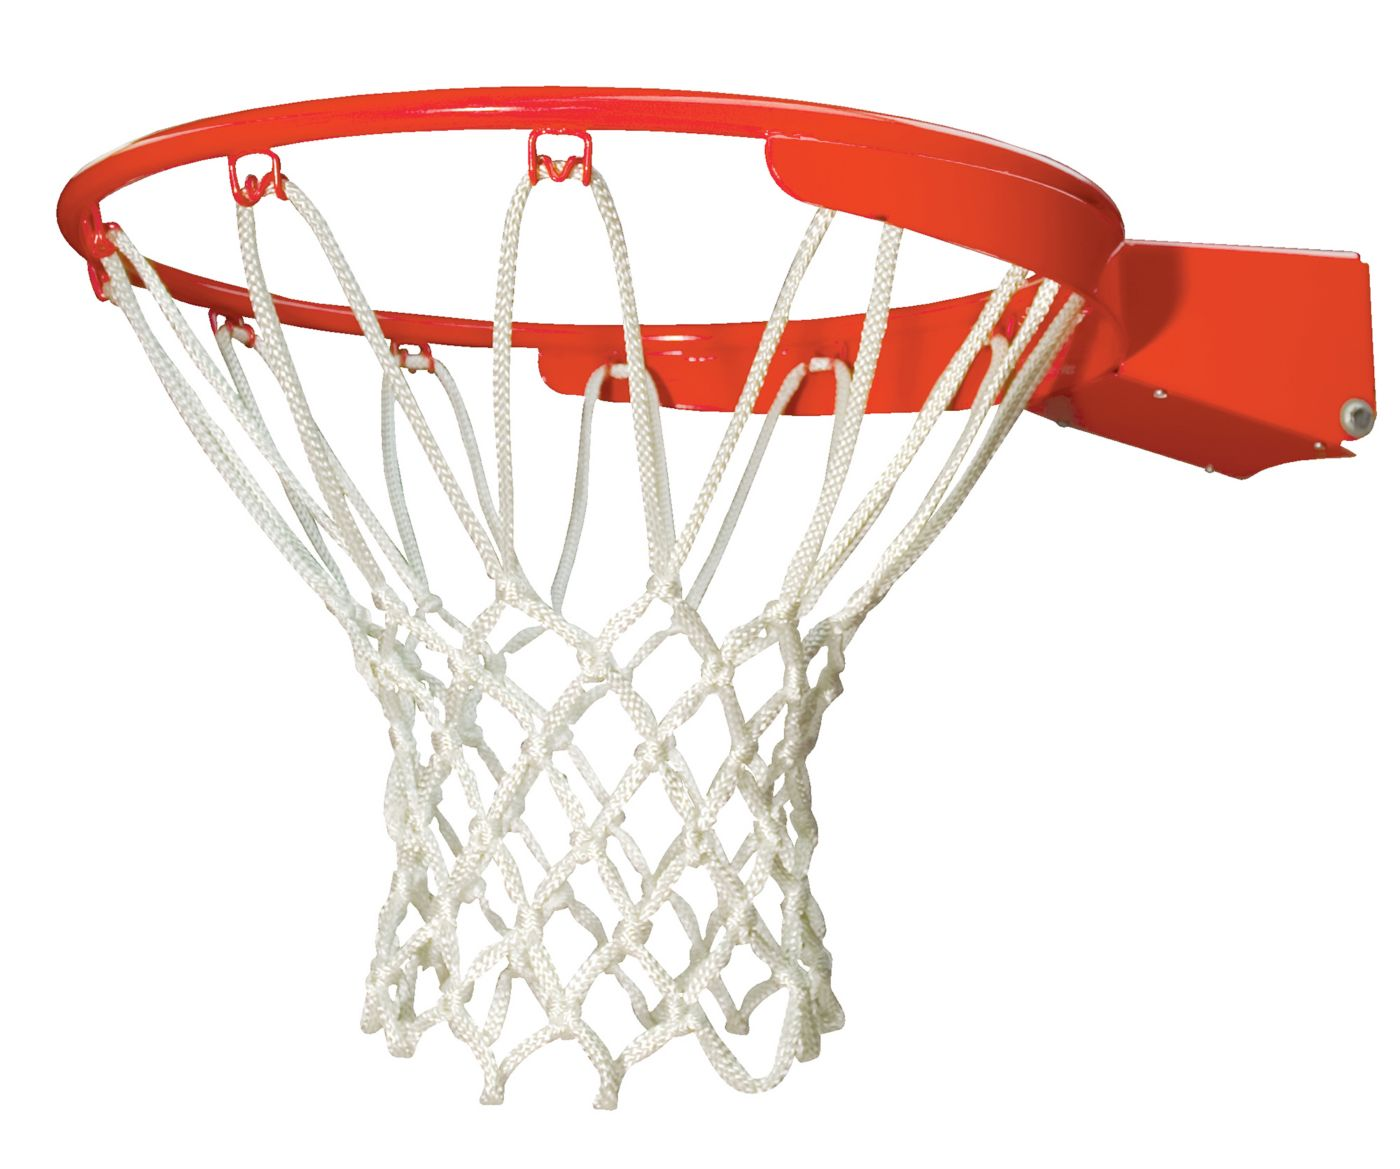 Lifetime Slam-It Pro Basketball Rim